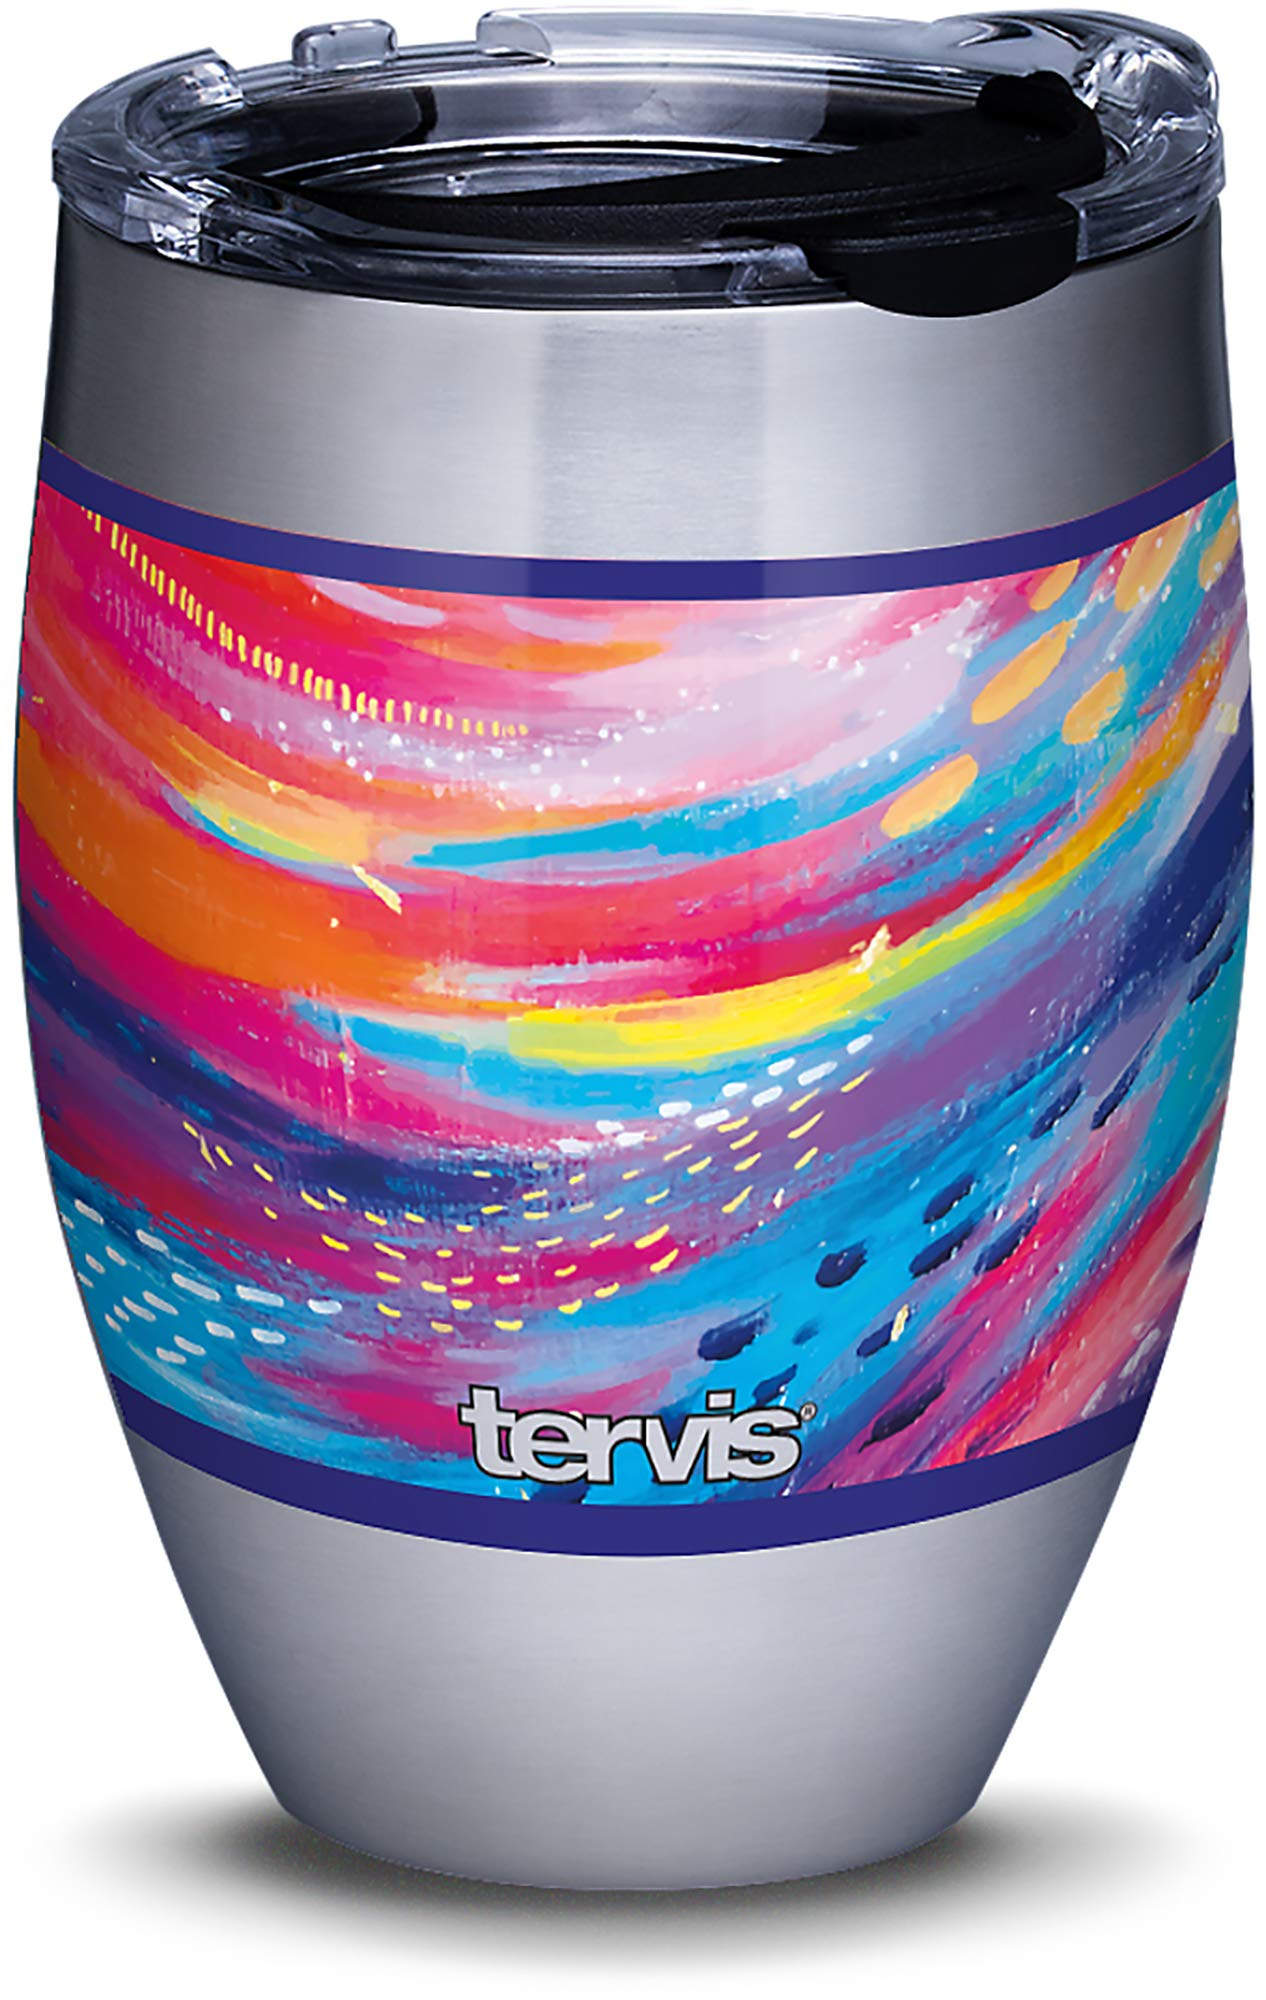 Amazon Com Tervis Etta Vee Happy Abstract Stainless Steel Insulated Tumbler With Clear And Black Hammer Lid 12oz Silver Tumblers Water Glasses